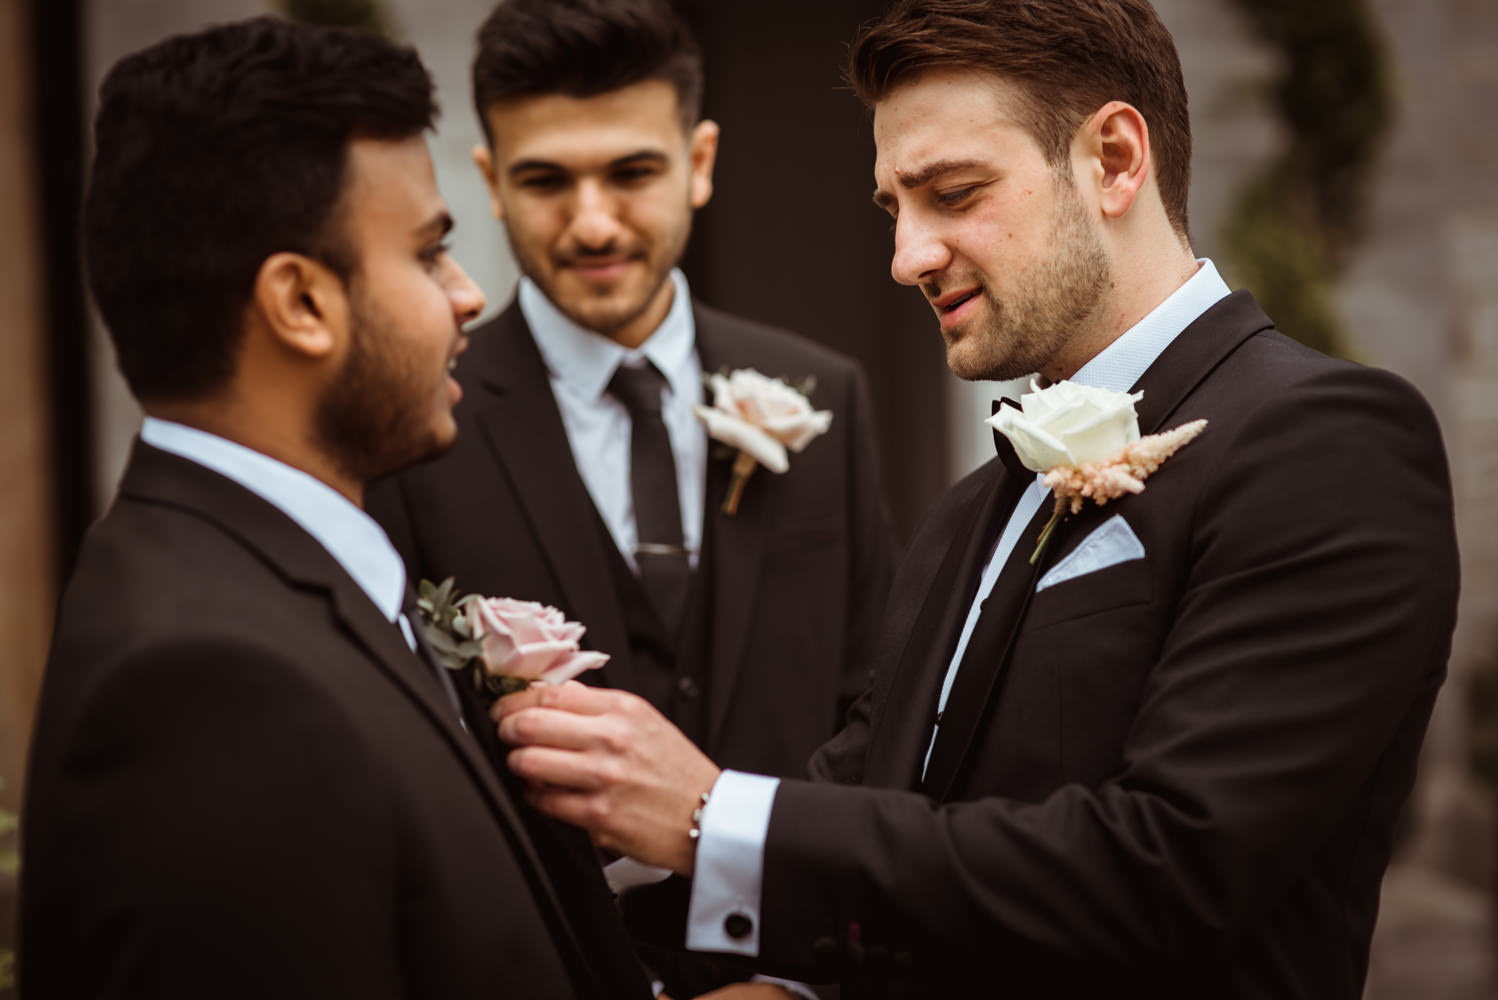 wedding-suits-for-men-scotland.jpg